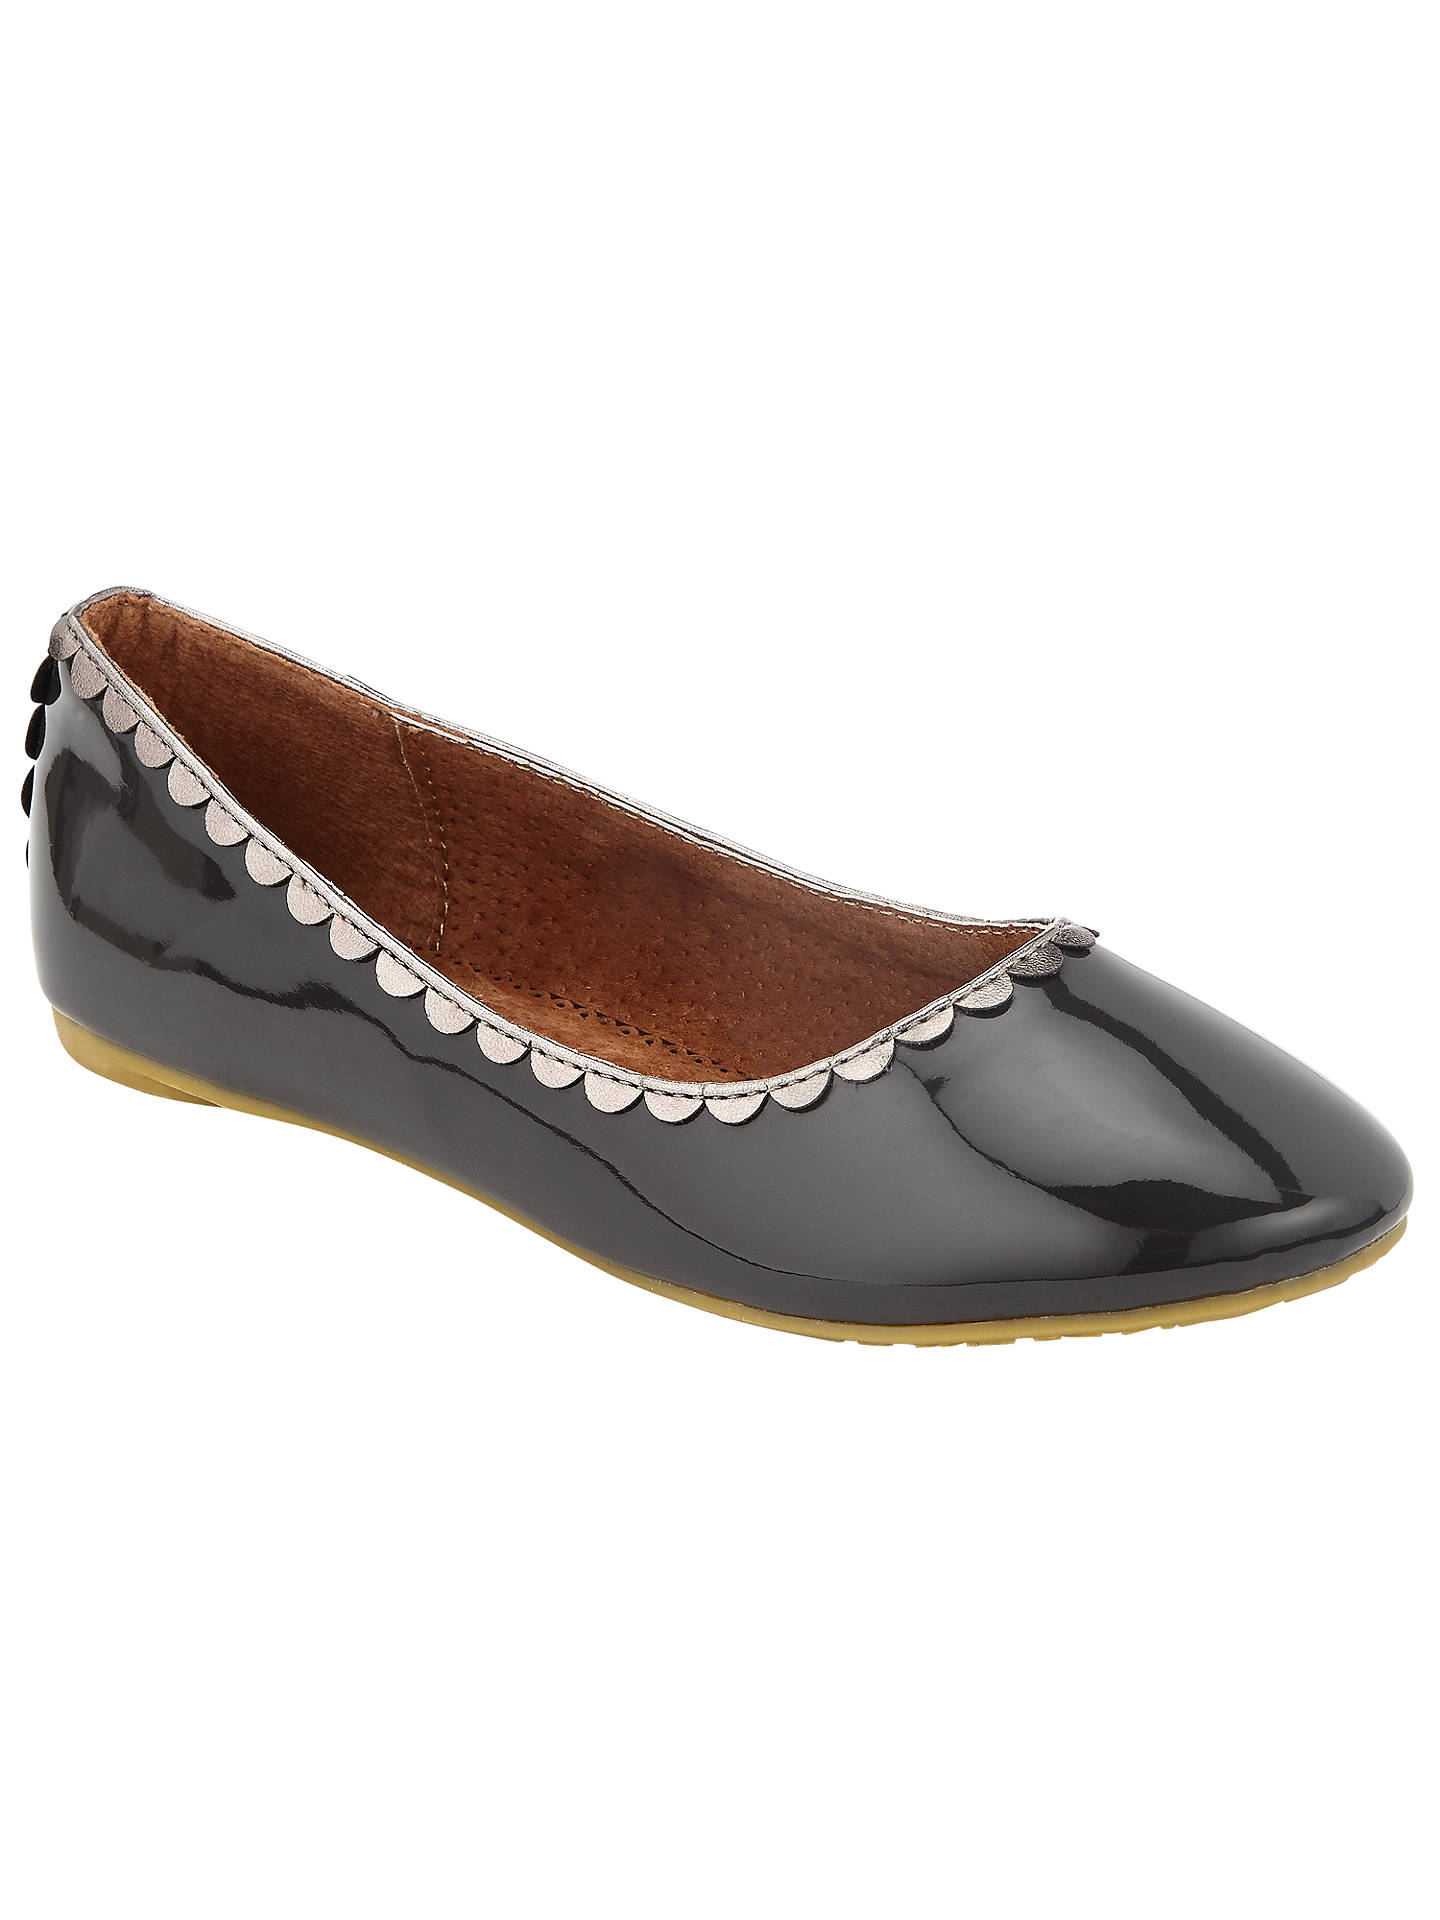 5b895ebe8a31 Buy John Lewis Children s Darcy Scallop Shoes